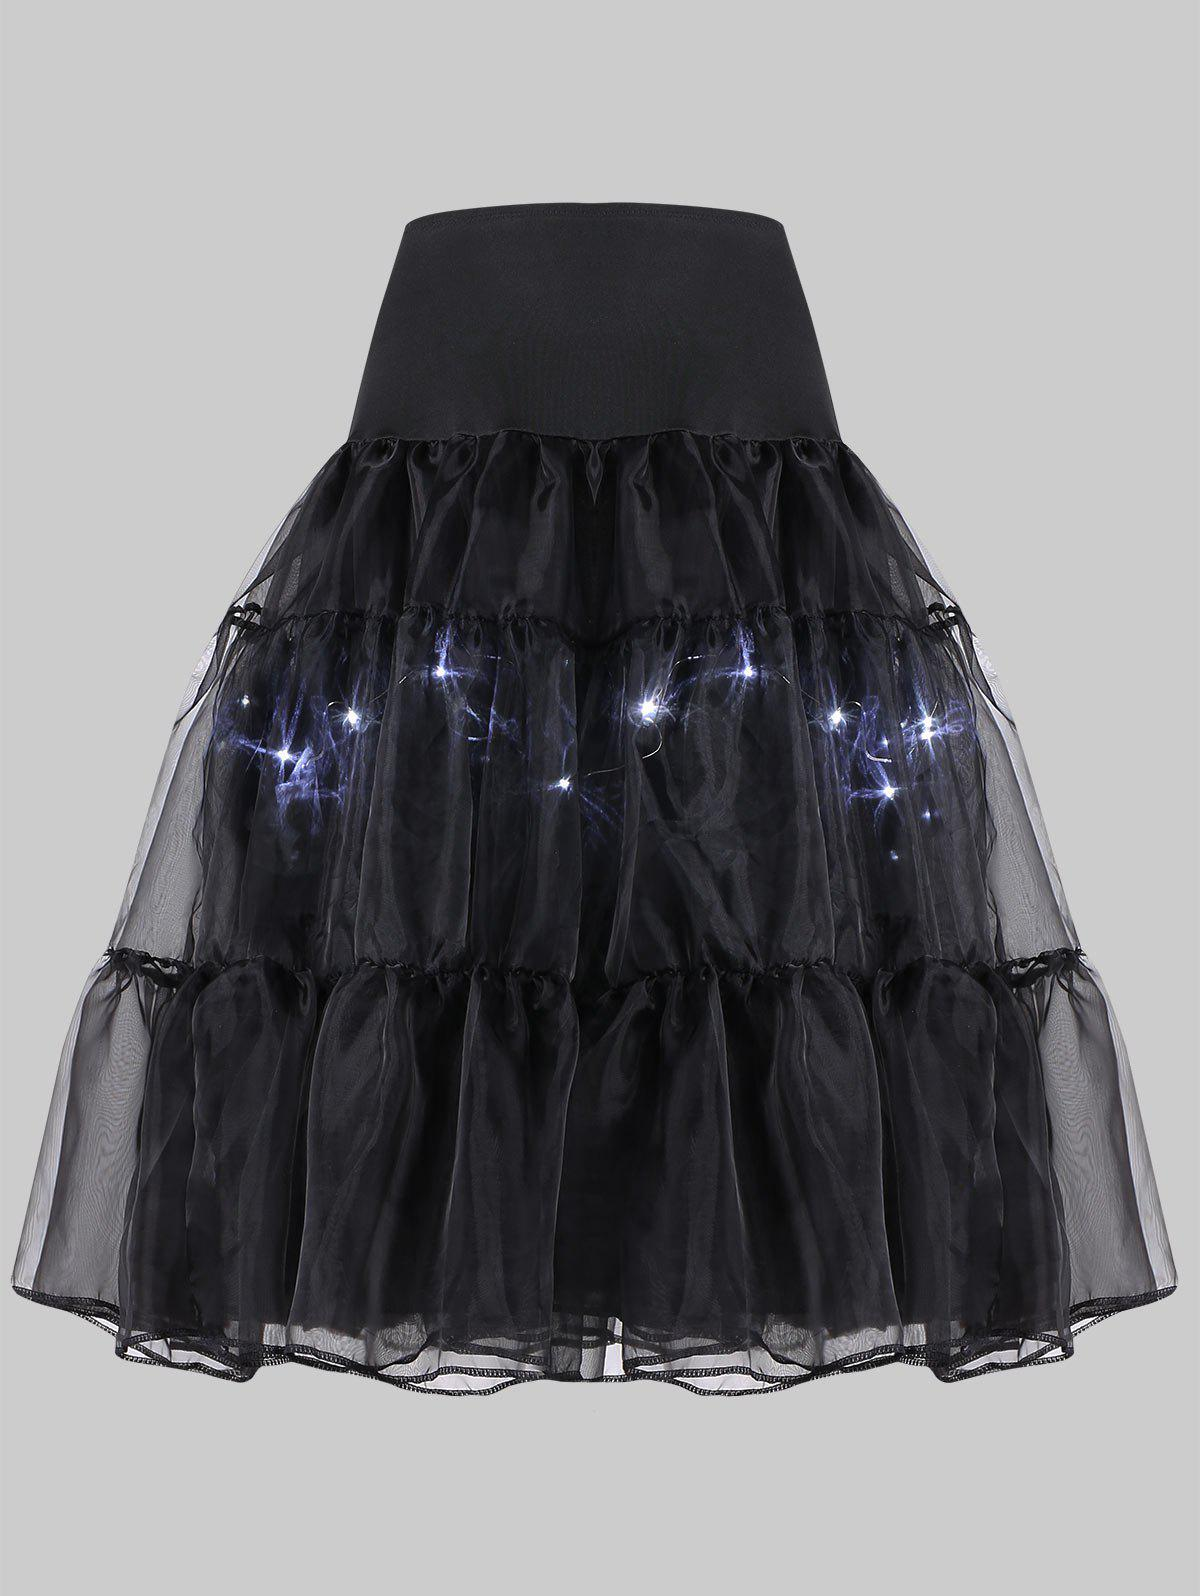 Plus Size Light Up Cosplay Party Skirt flounce light up cosplay skirt